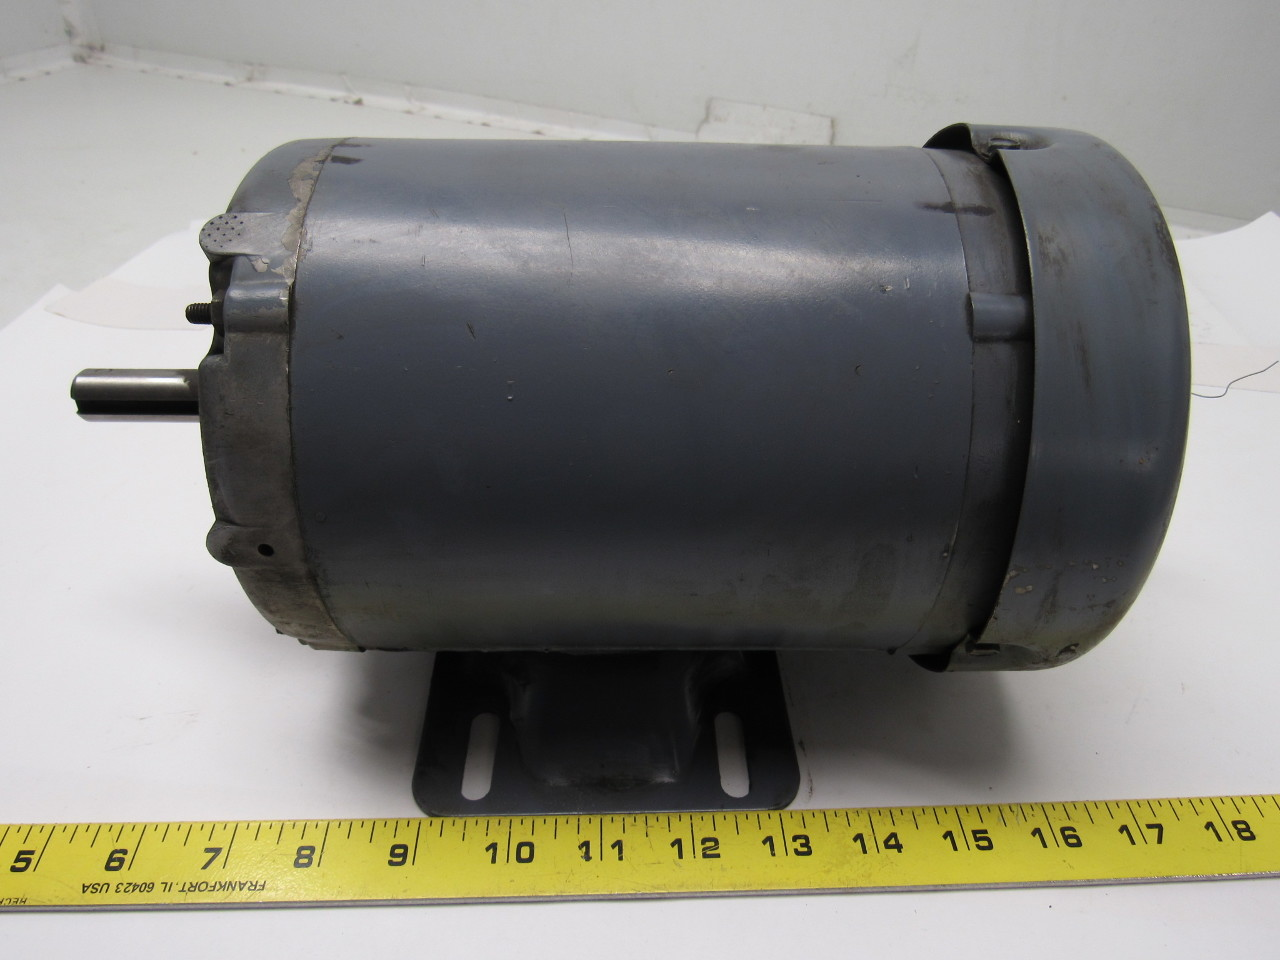 Baldor m3537 1 2 hp electric motor 3ph 208 230 460v for 1 2 hp ac motor